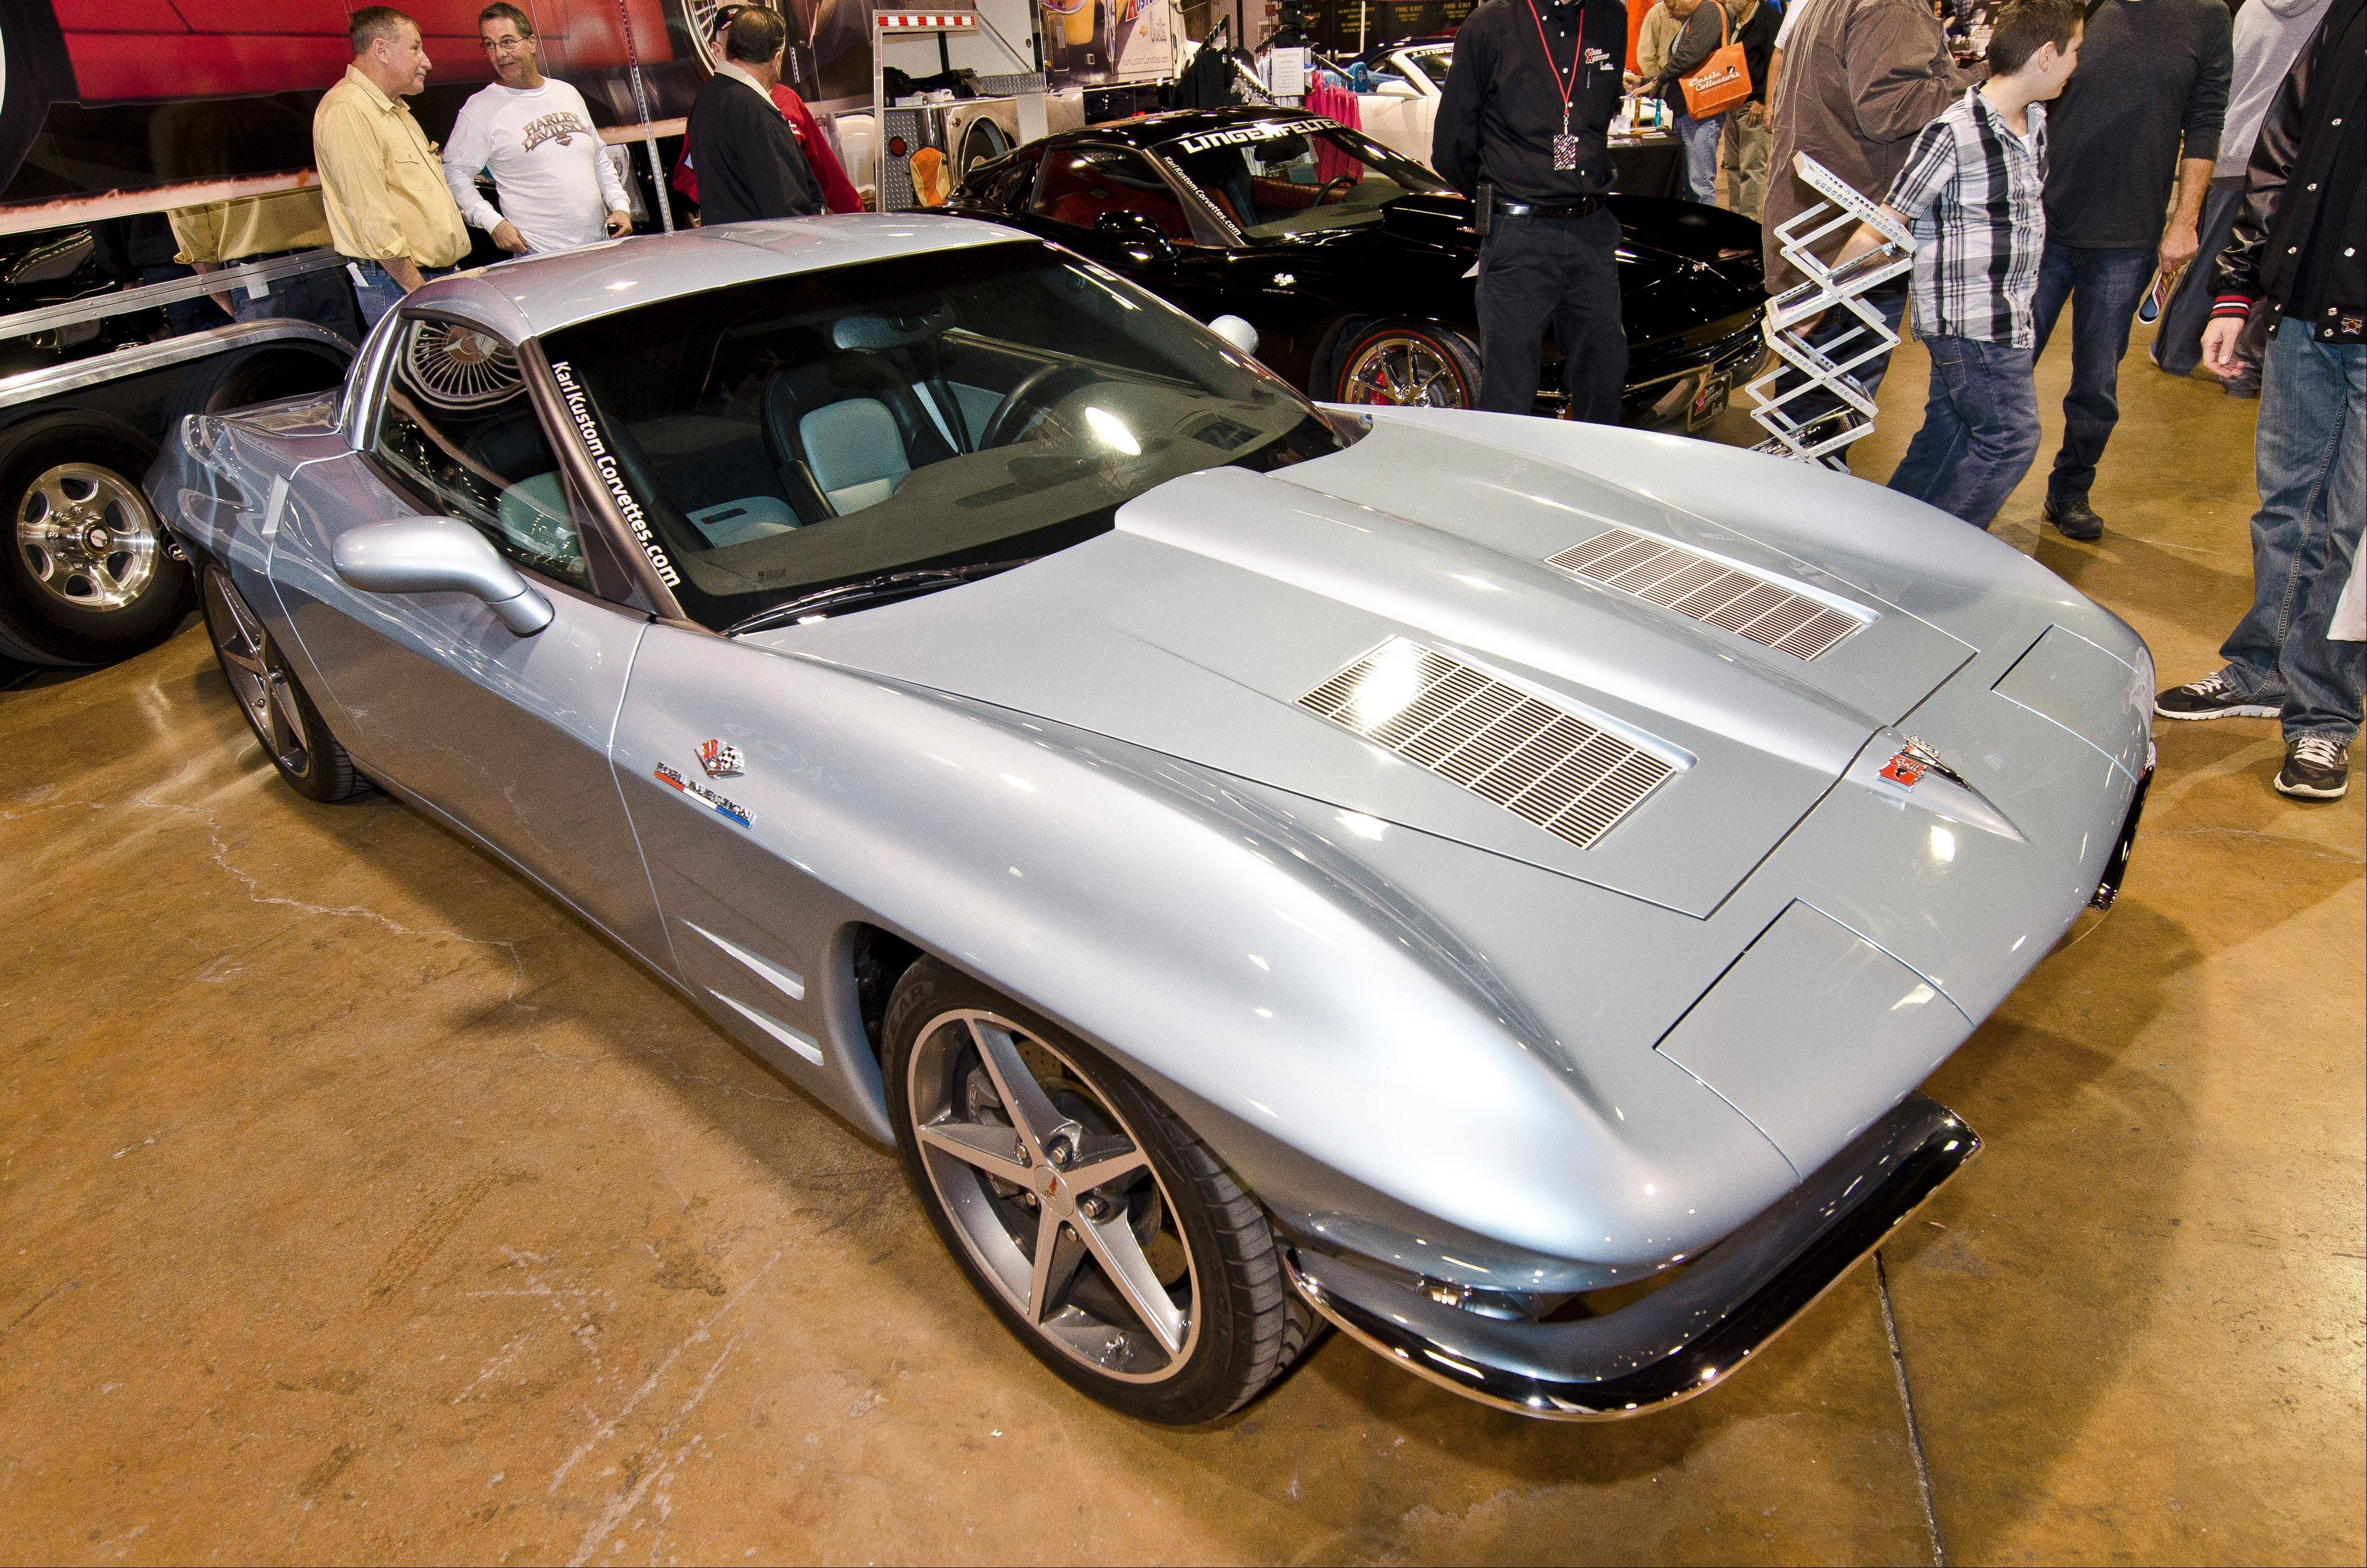 Today, some high-end custom car shops can take a new model, preserve all the safety features and modern technology, and give it the classic lines and styling of their favorite oldies. This new Corvette now features mid-1960s styling.